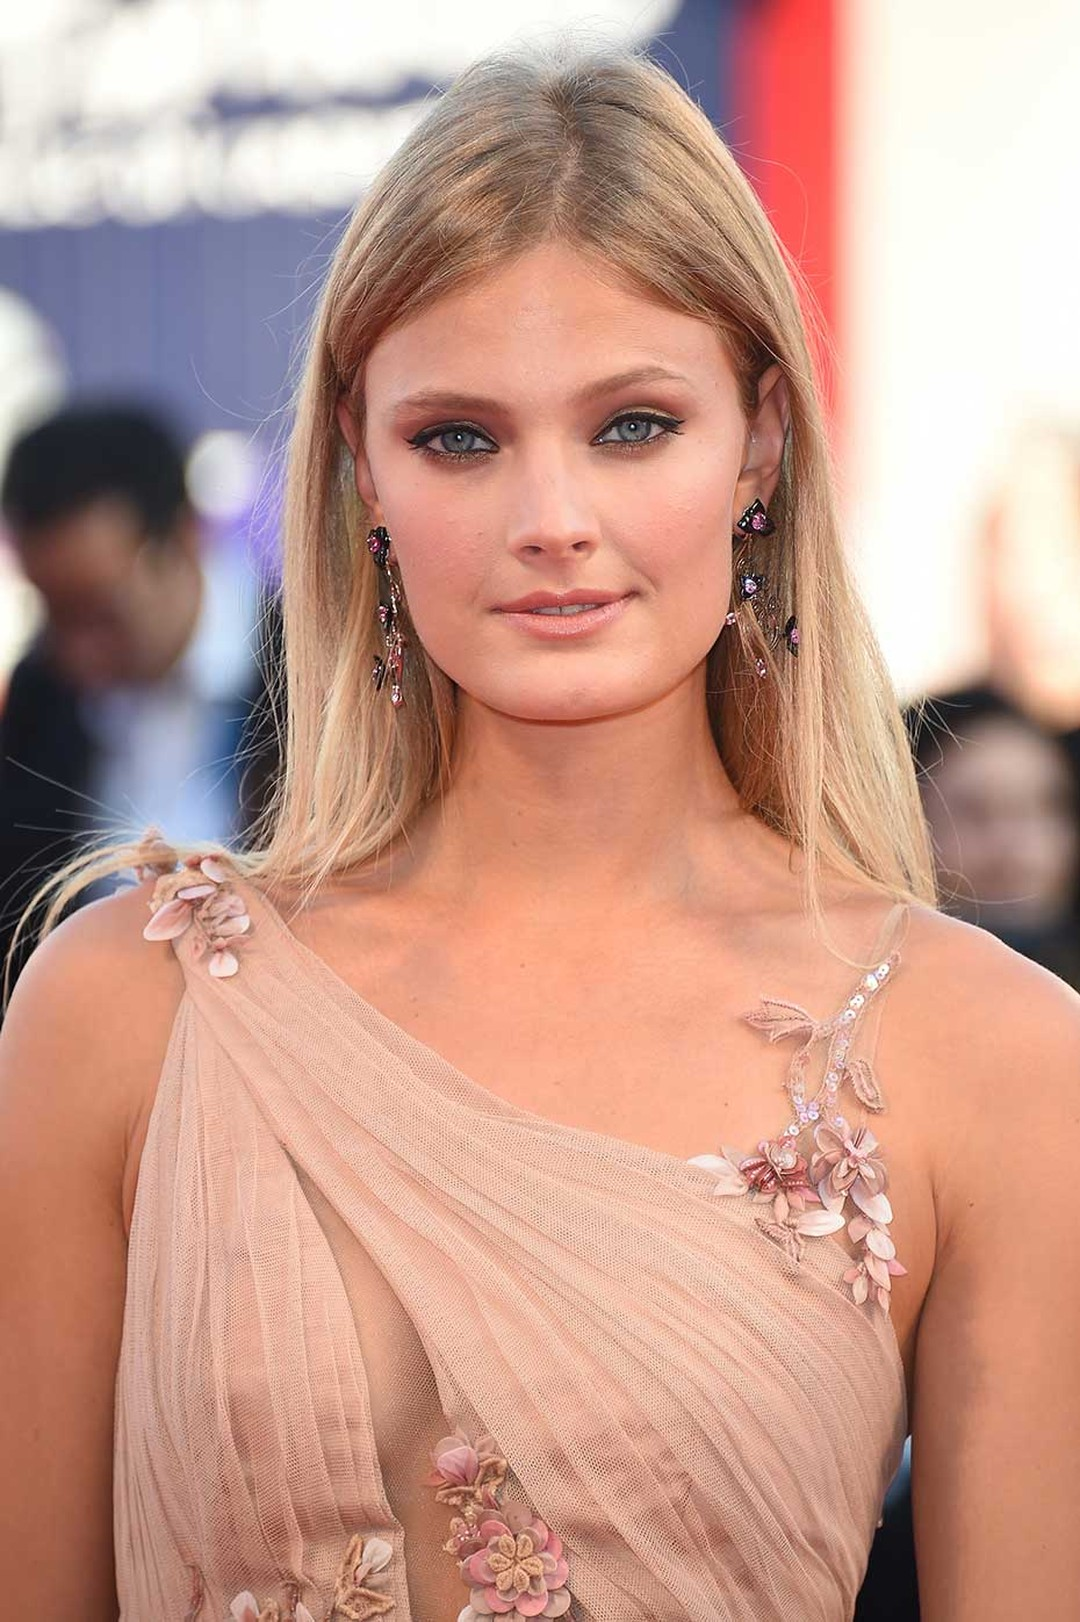 French model Constance Jablonski walked the red carpet at the Venice Film Festival 2014 in floral Chopard earrings set with onyx, heart-shaped pink sapphires, marquise-cut spinels and black brilliant-cut diamonds.